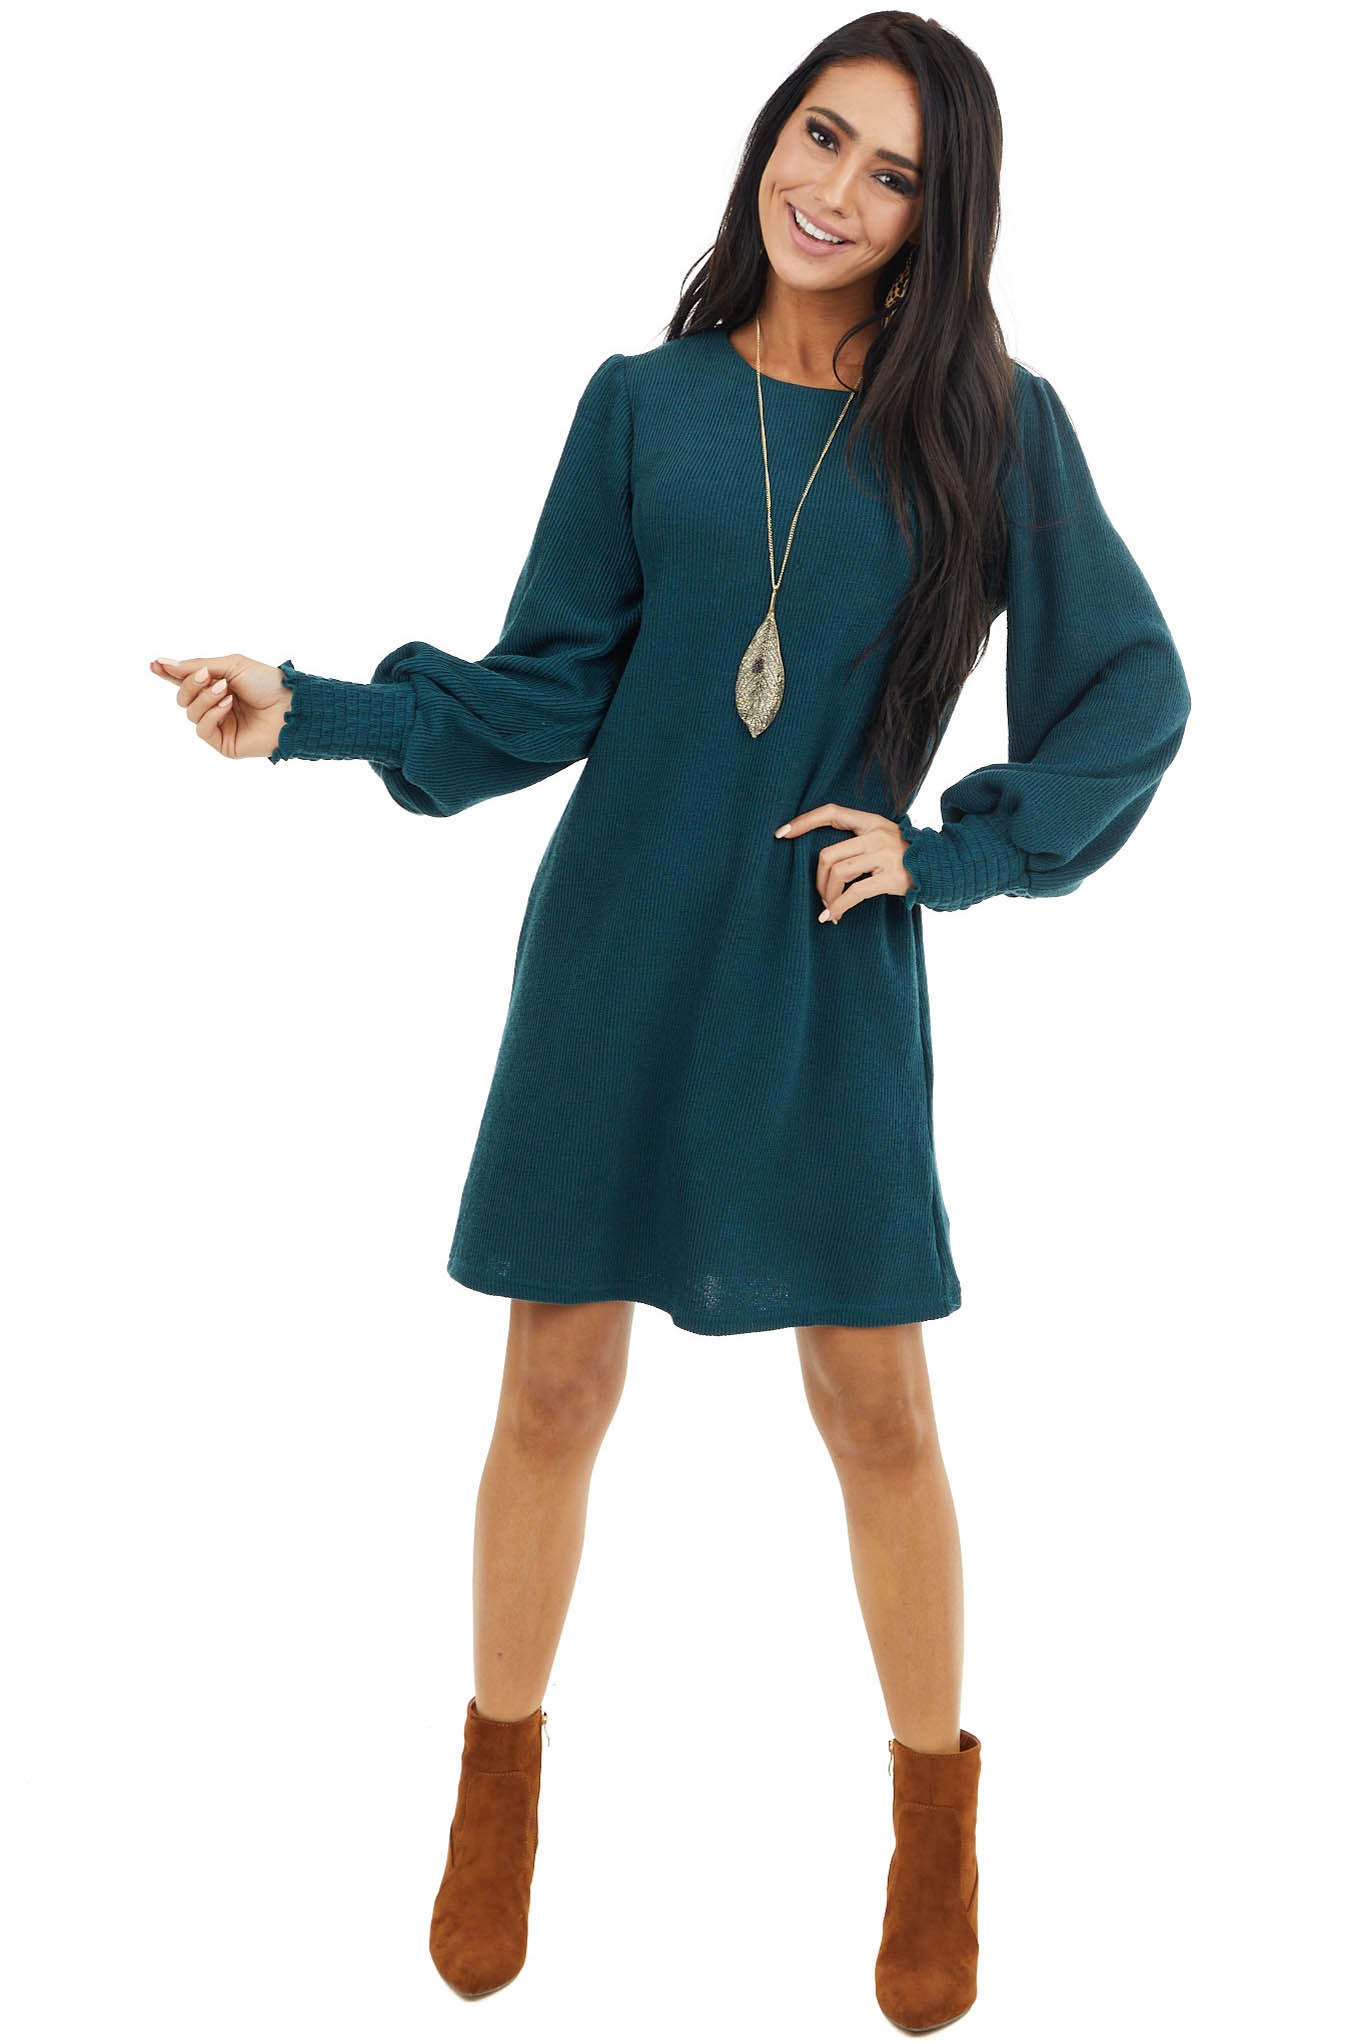 Pine Ribbed Knit Dress with Smocked Cuffs and Keyhole Back